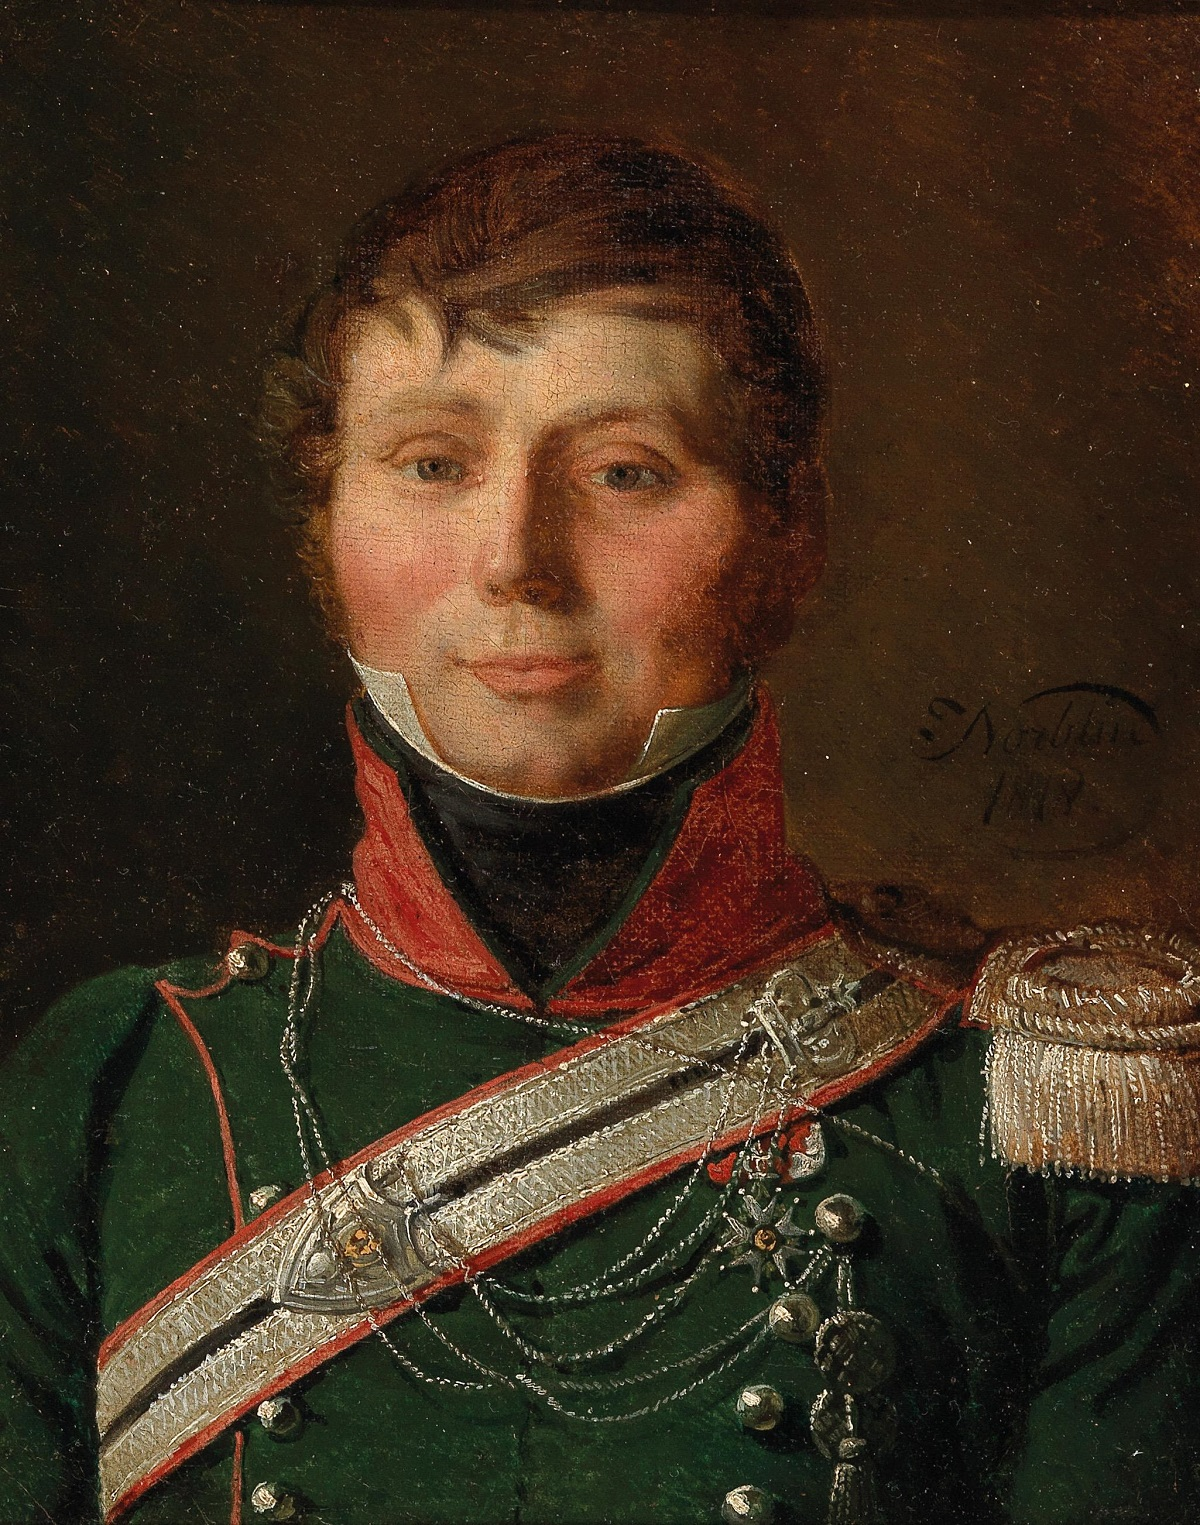 Portrait of a capitaine du 1er regiment des chasseurs-a-cheval, decorated with the Knight's Cross of the French Légion d'honneur